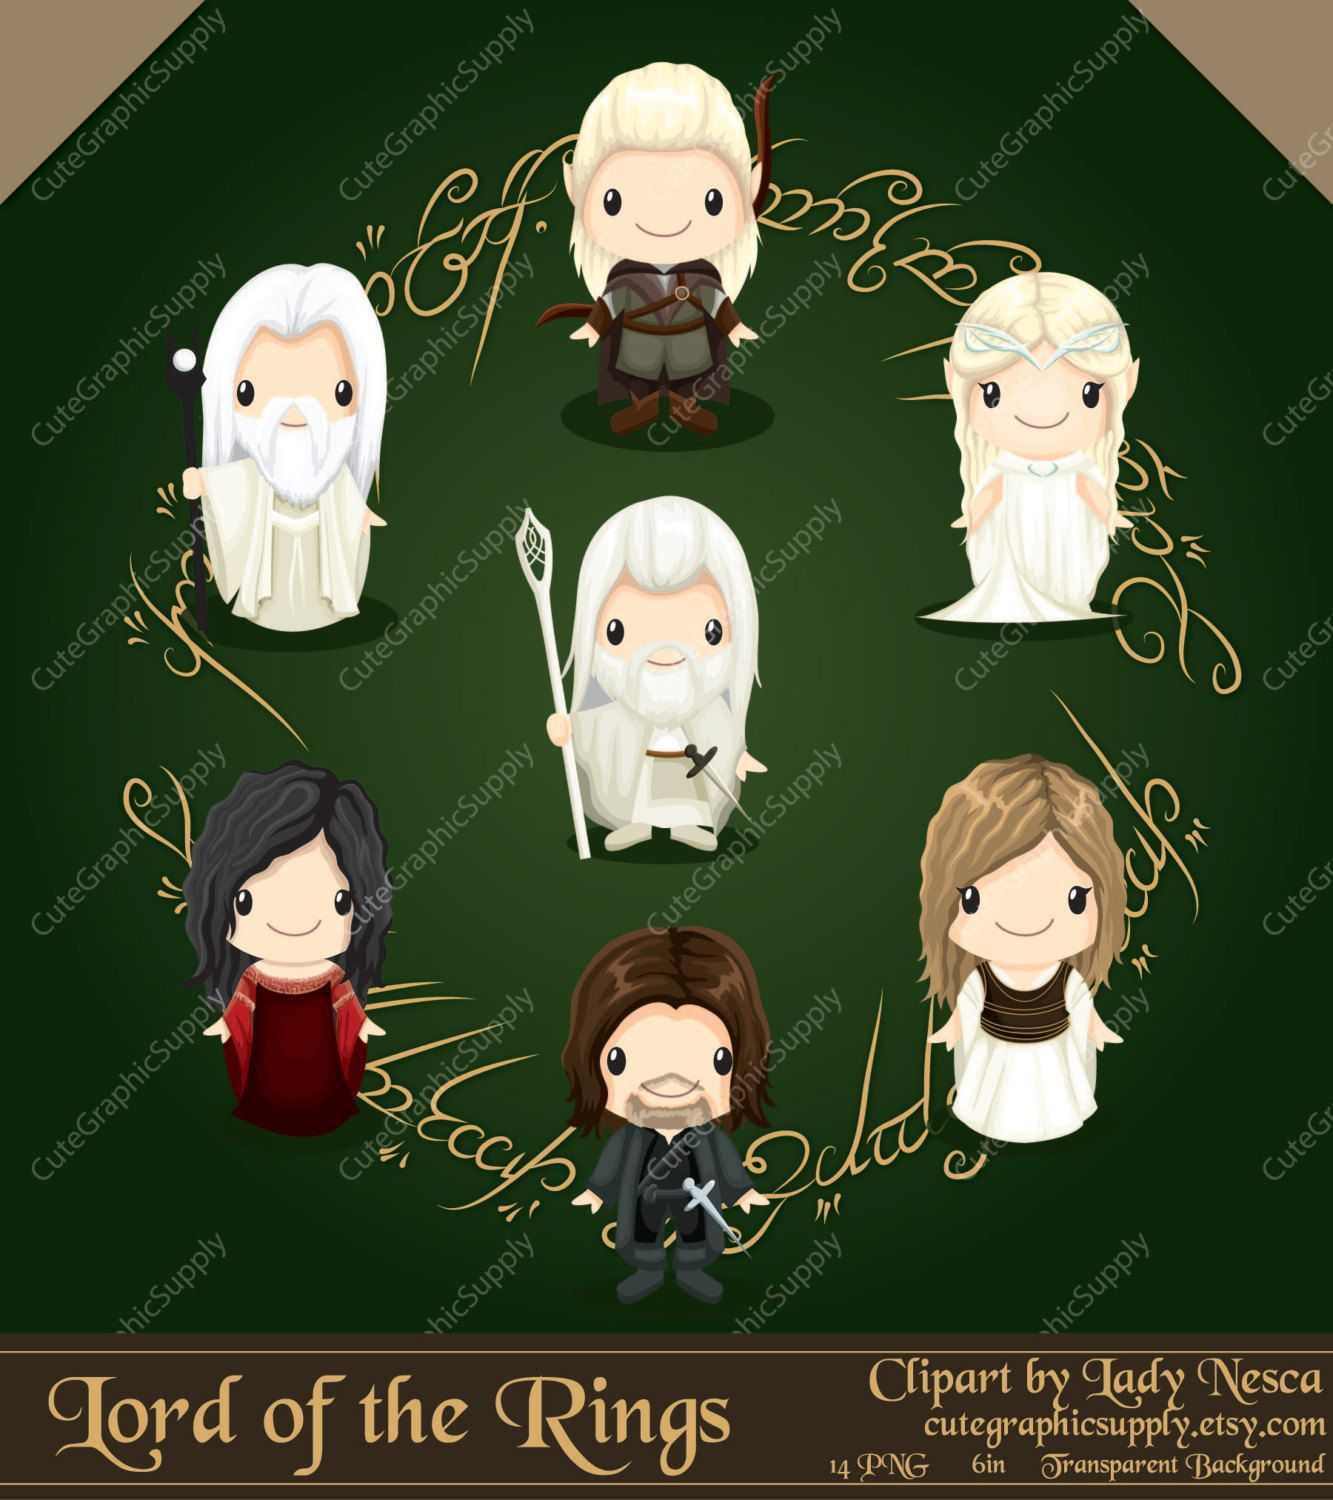 Lord of the Rings inspired clipart hobbi-Lord of the Rings inspired clipart hobbit by CuteGraphicSupply-7